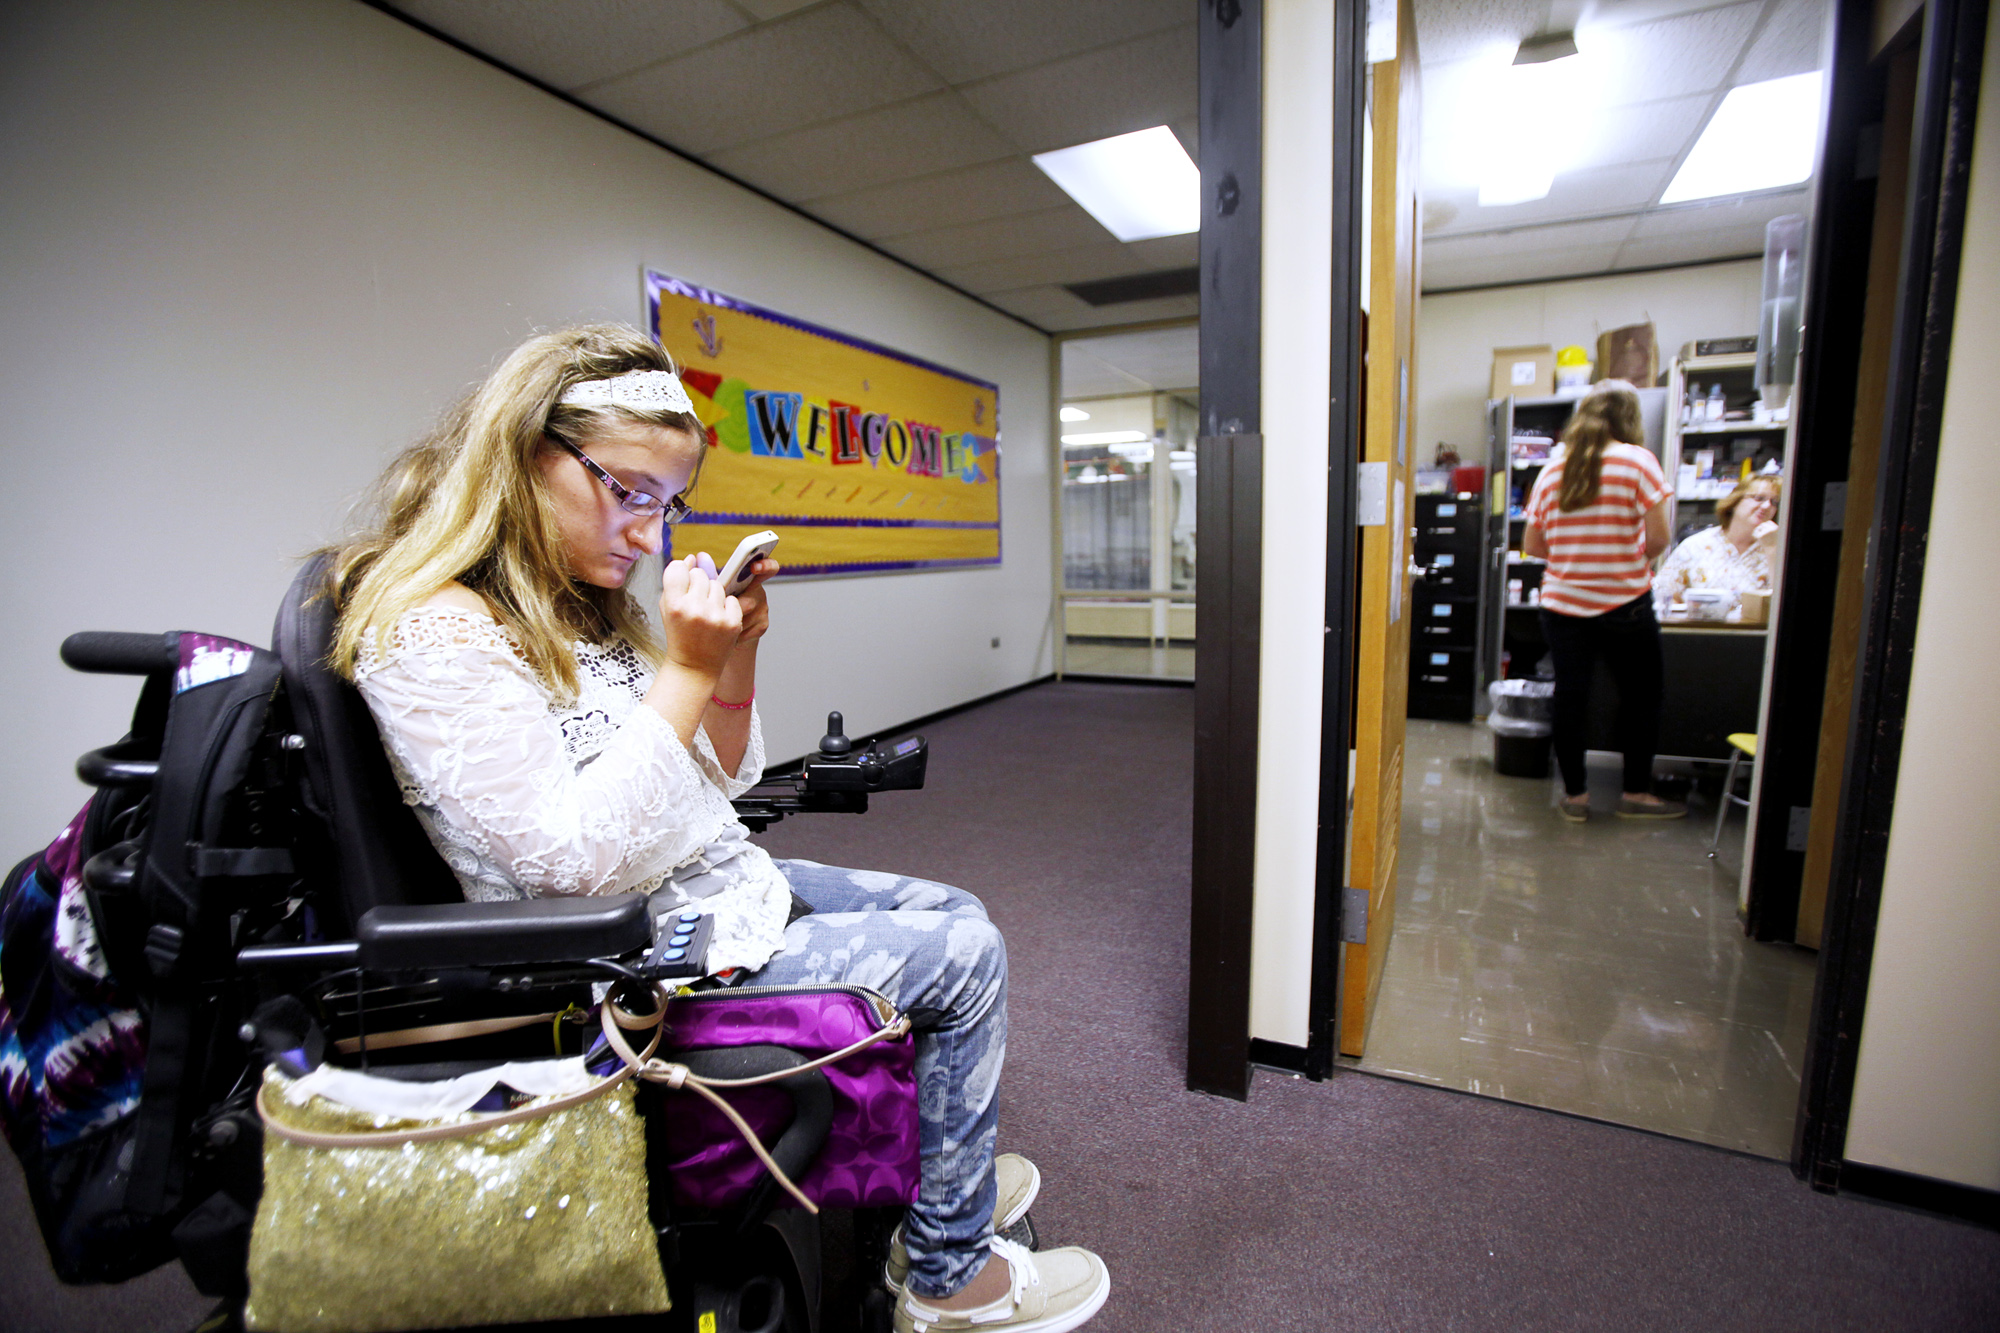 Emily Lezon waits at the nurse's office for help using the restroom during school Monday, October 14.